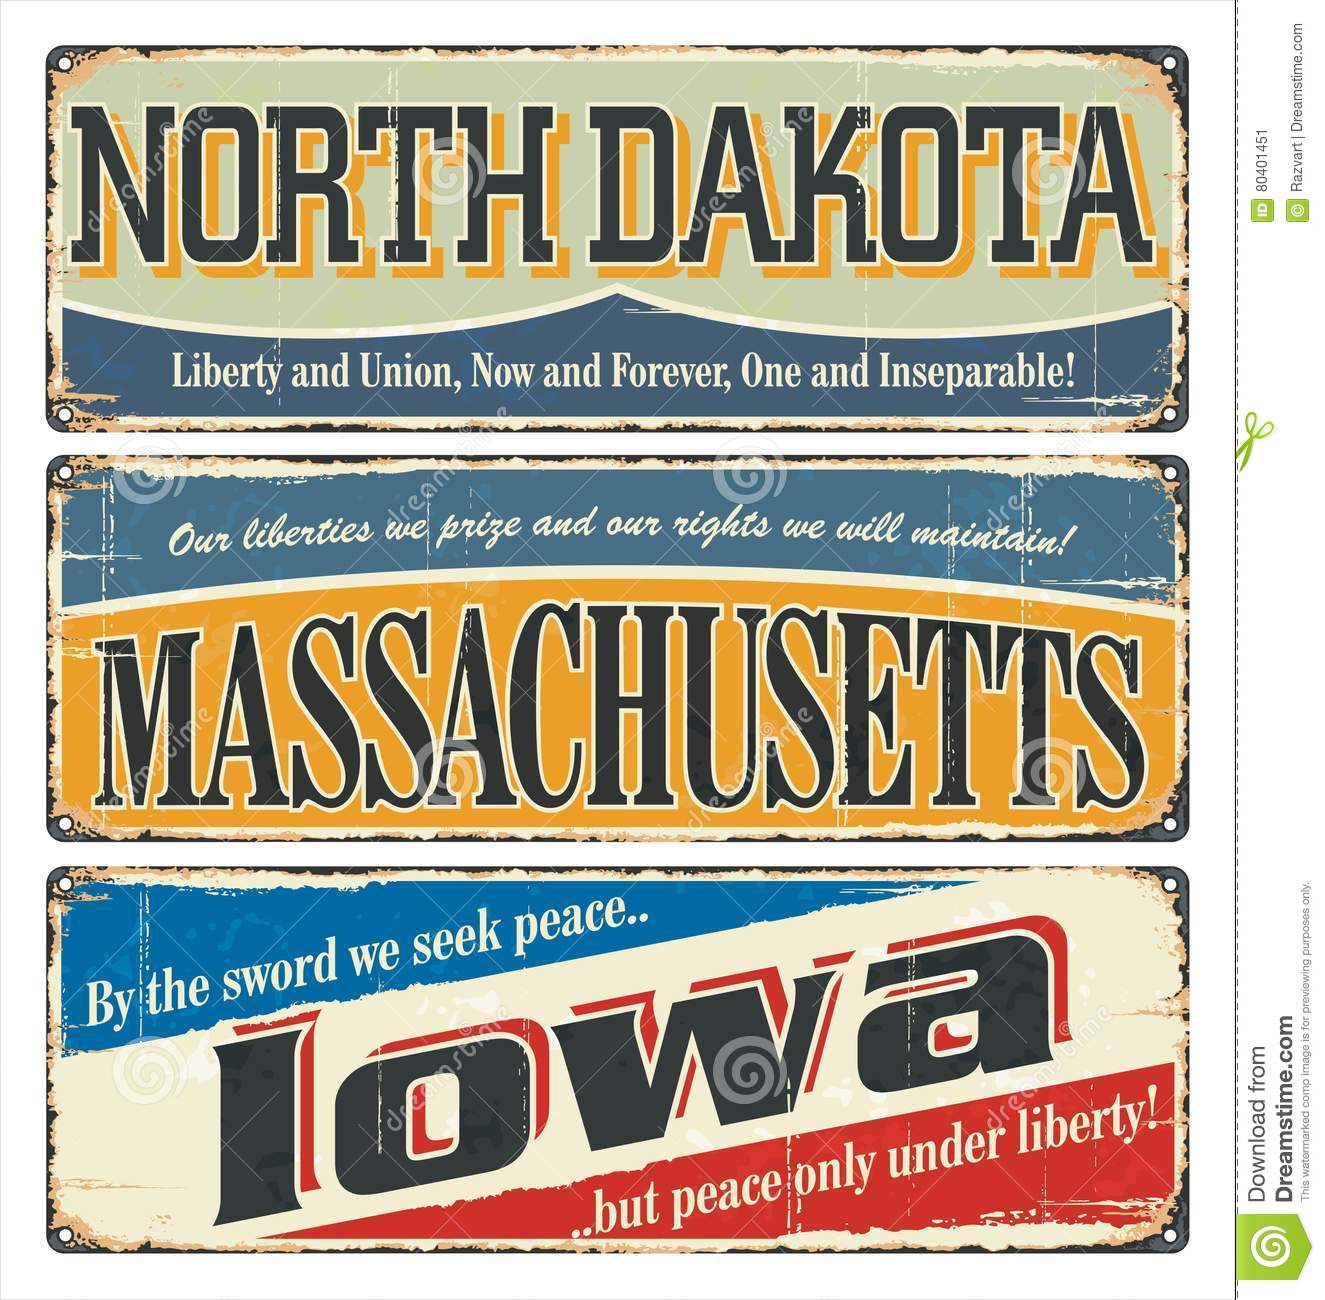 Vintage sign collection with us state north dakota massachusetts vintage sign collection with us state north dakota massachusetts iowa retro souvenirs or postcard templates on rust backgroun pronofoot35fo Gallery